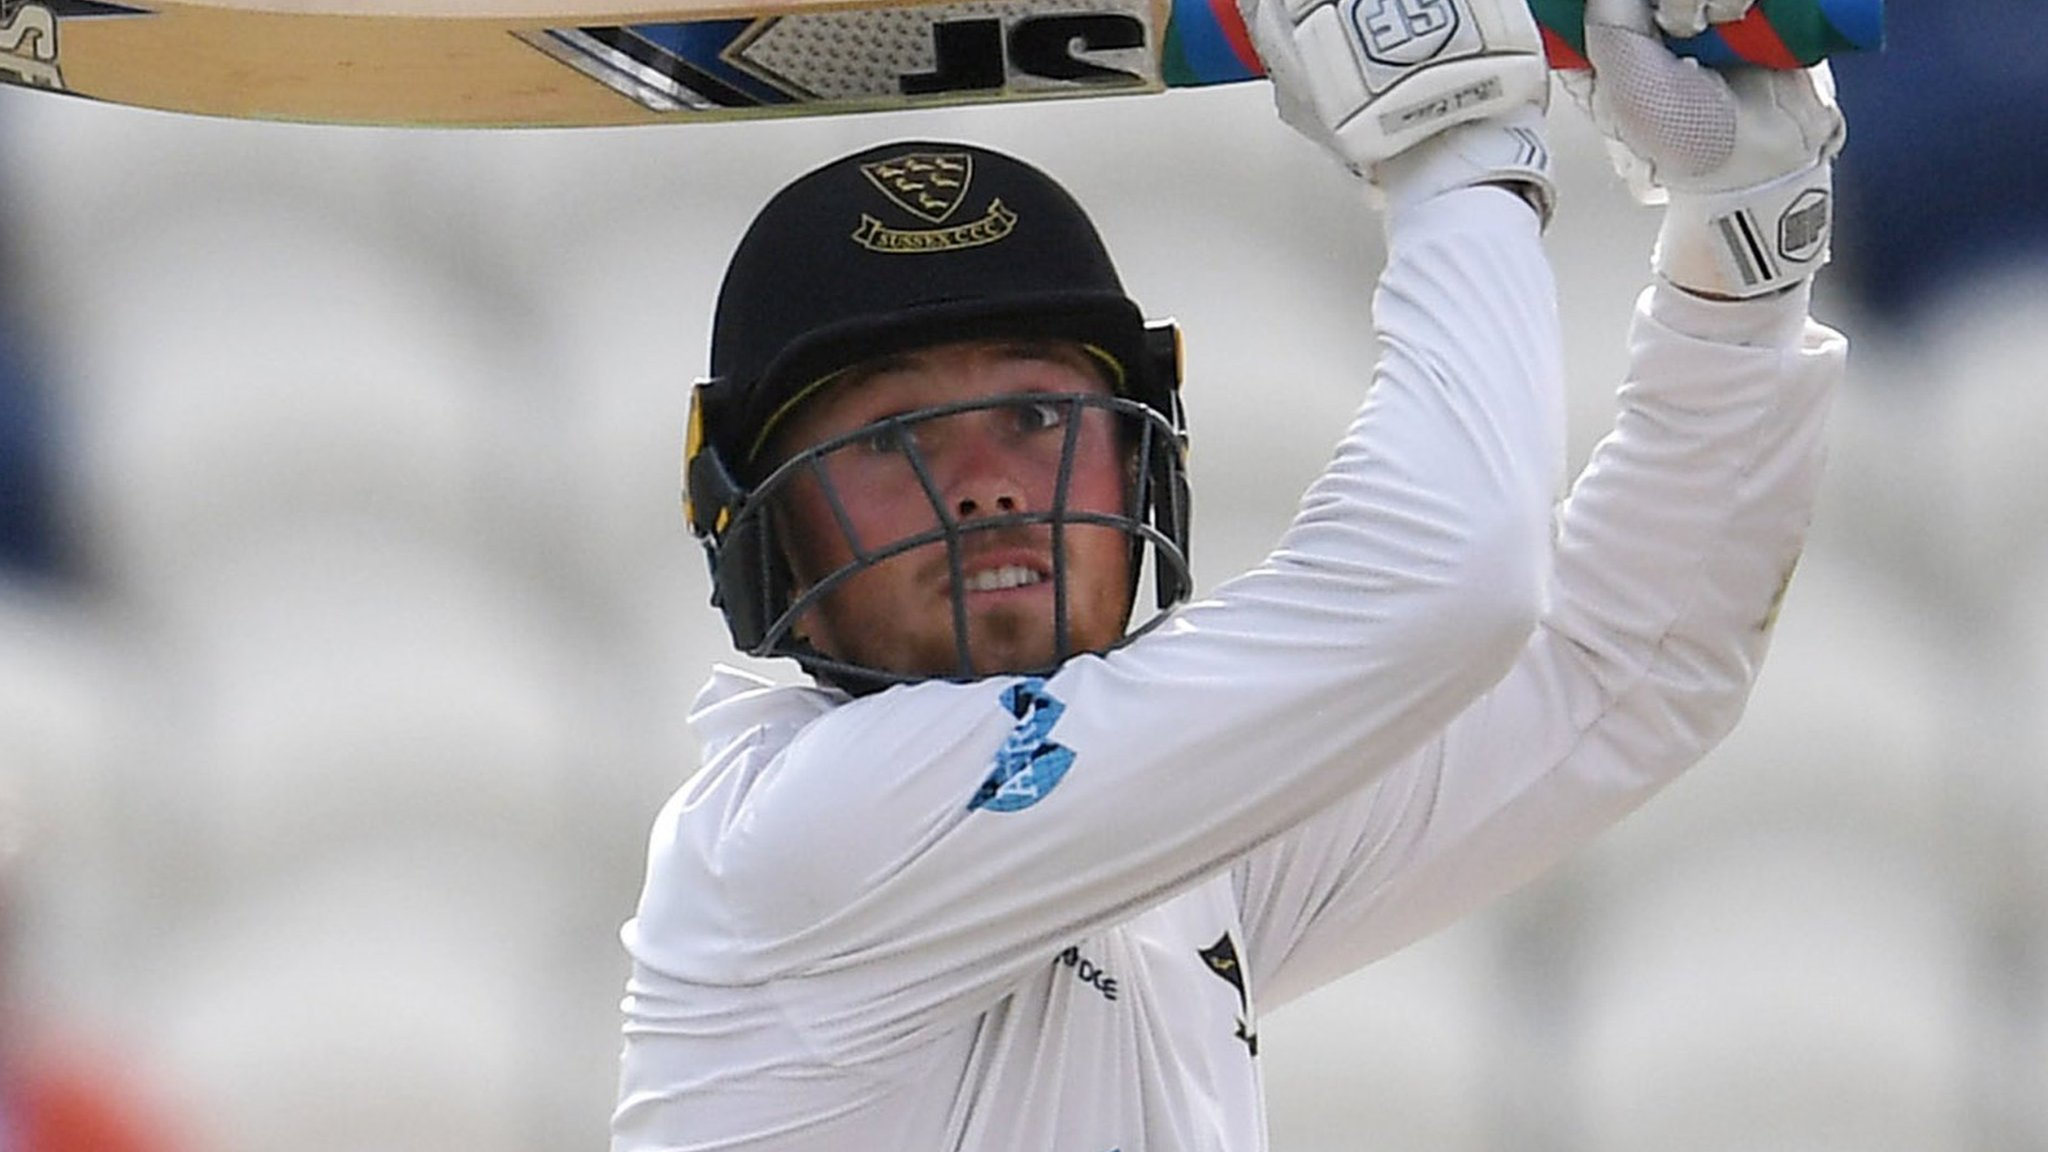 County Championship: Salt's 148 gives Sussex advantage against Derbyshire